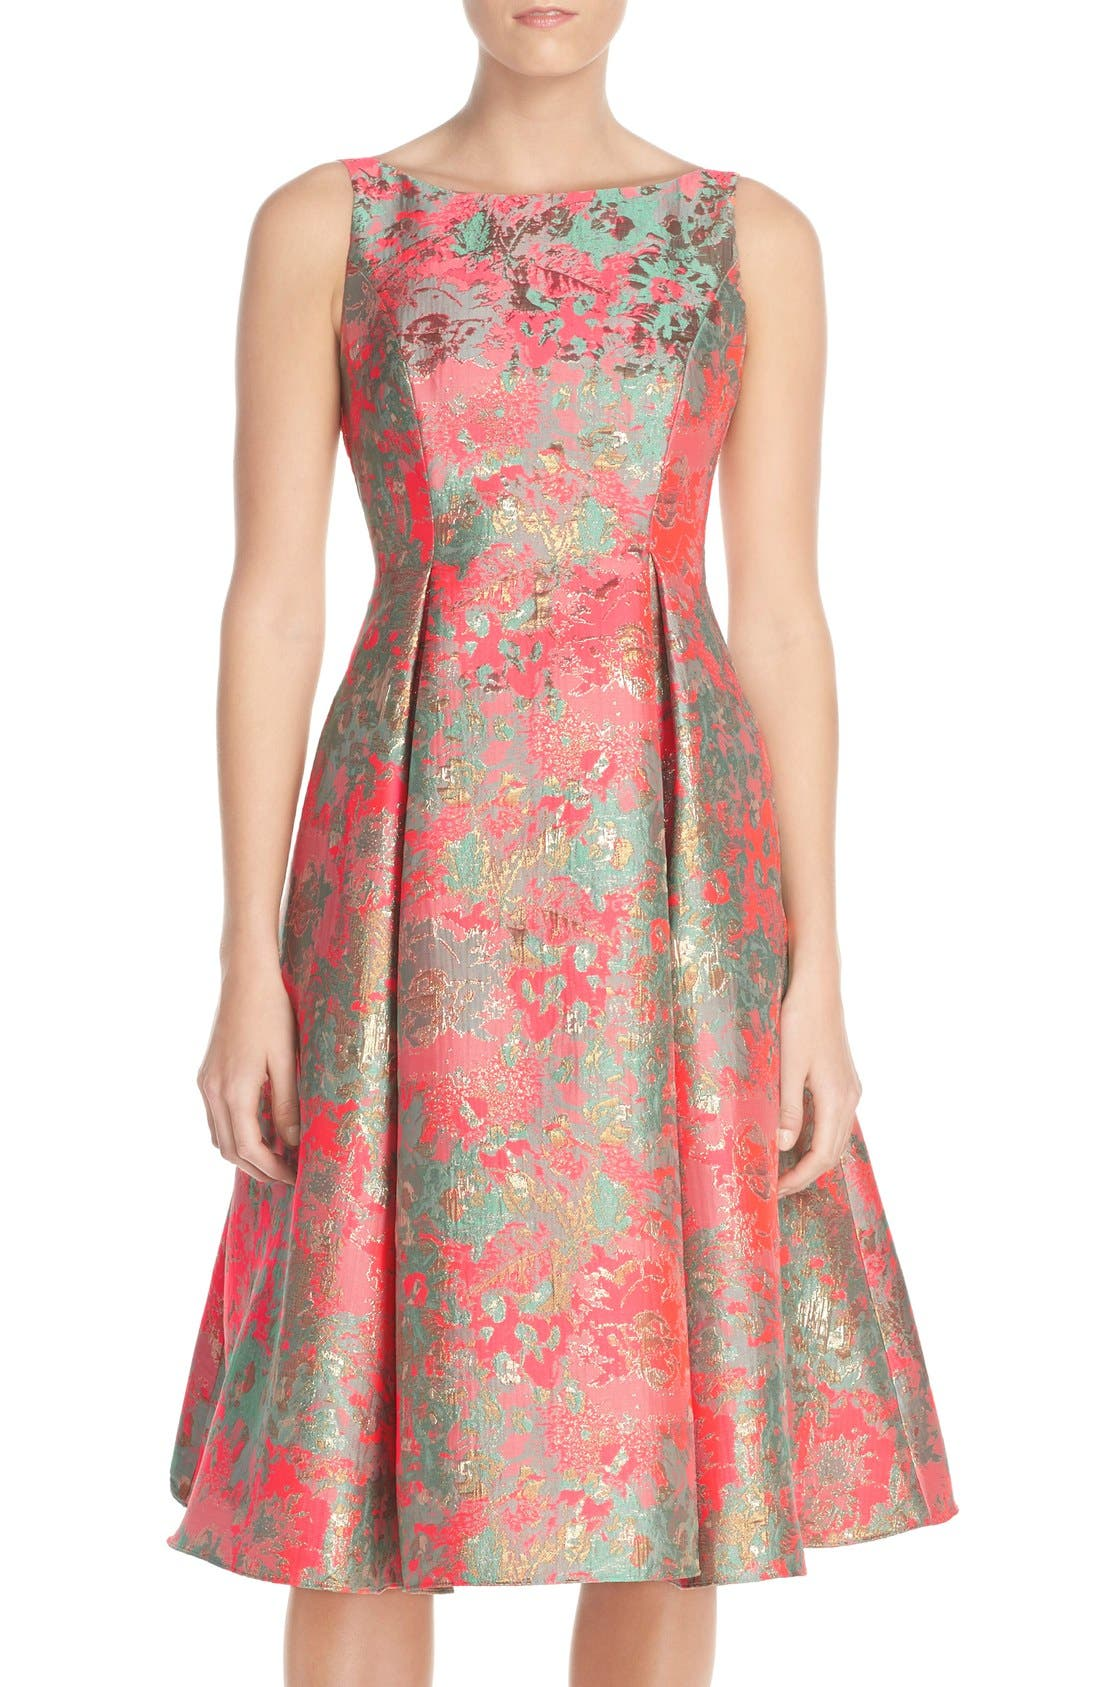 Adrianna Papell Metallic Jacquard Fit & Flare Dress